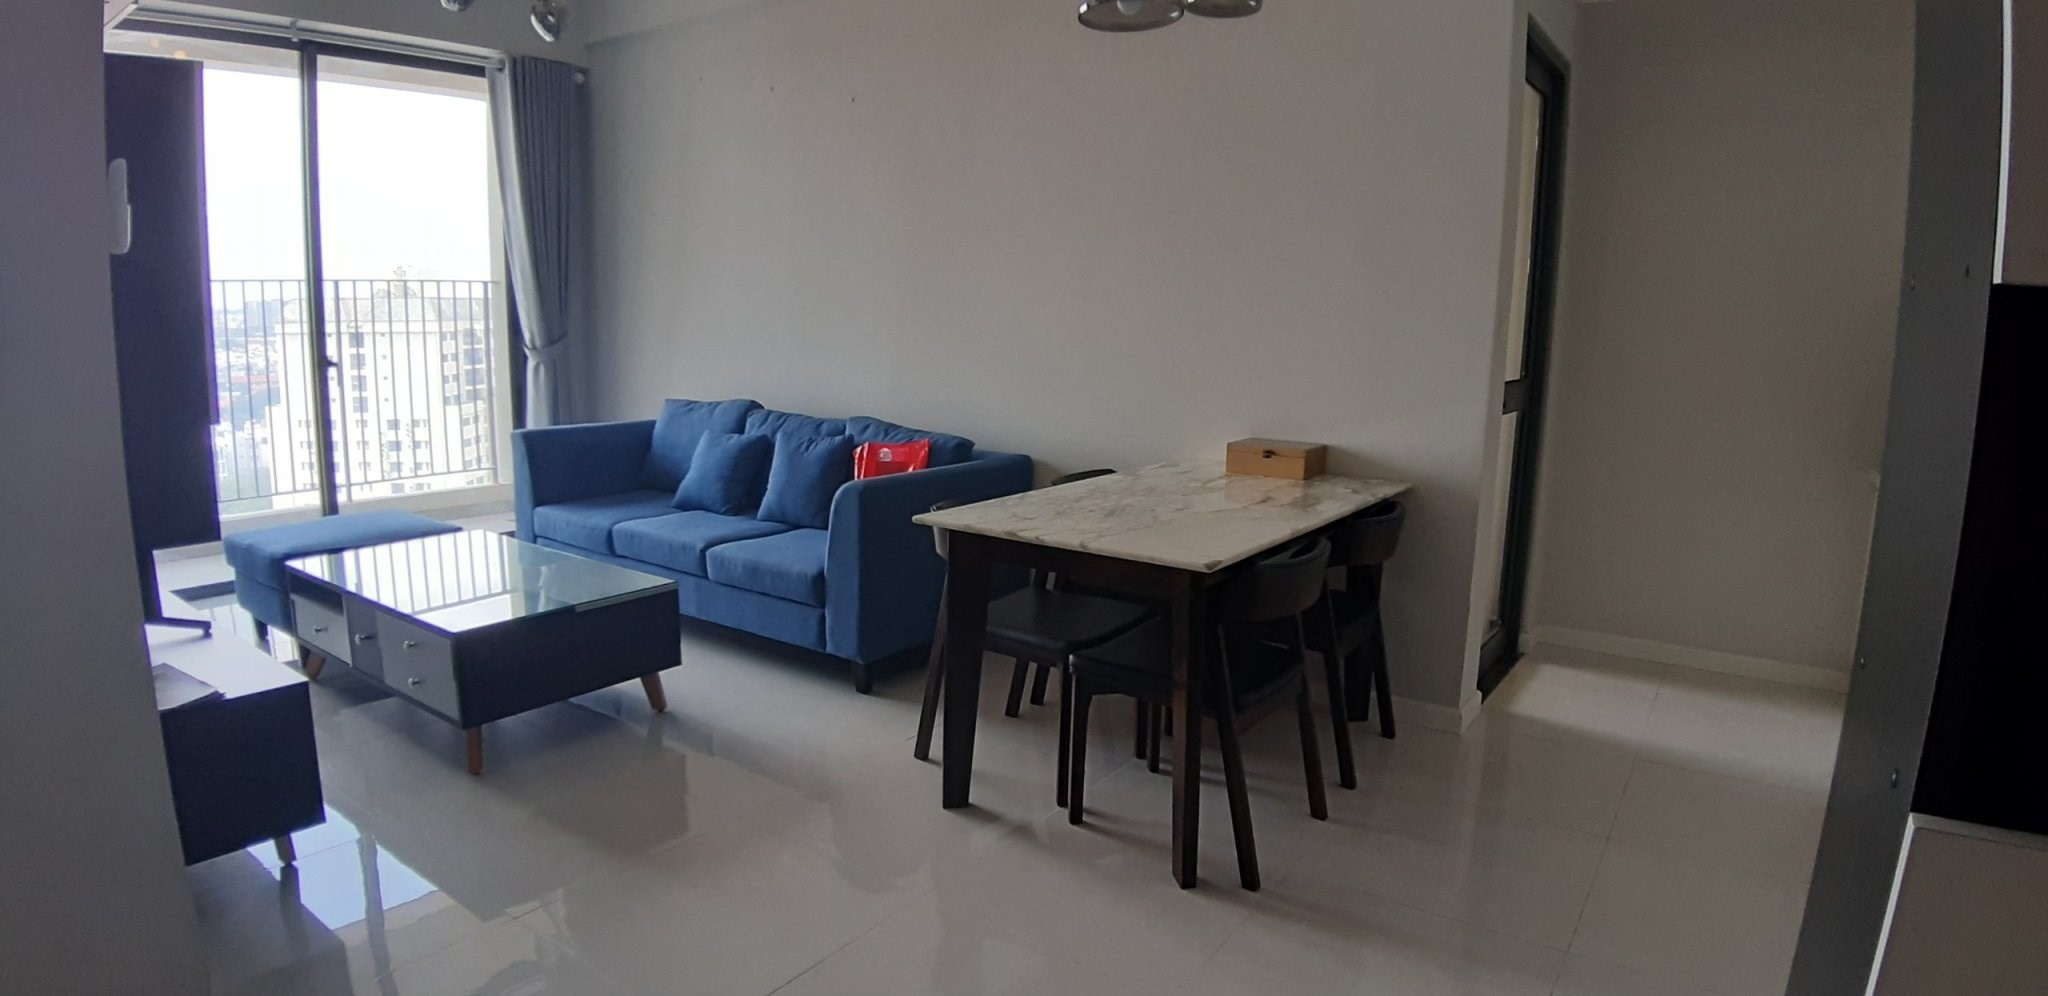 MAP89633 - Apartment for rent - Masteri An Phu - 2 bedroom